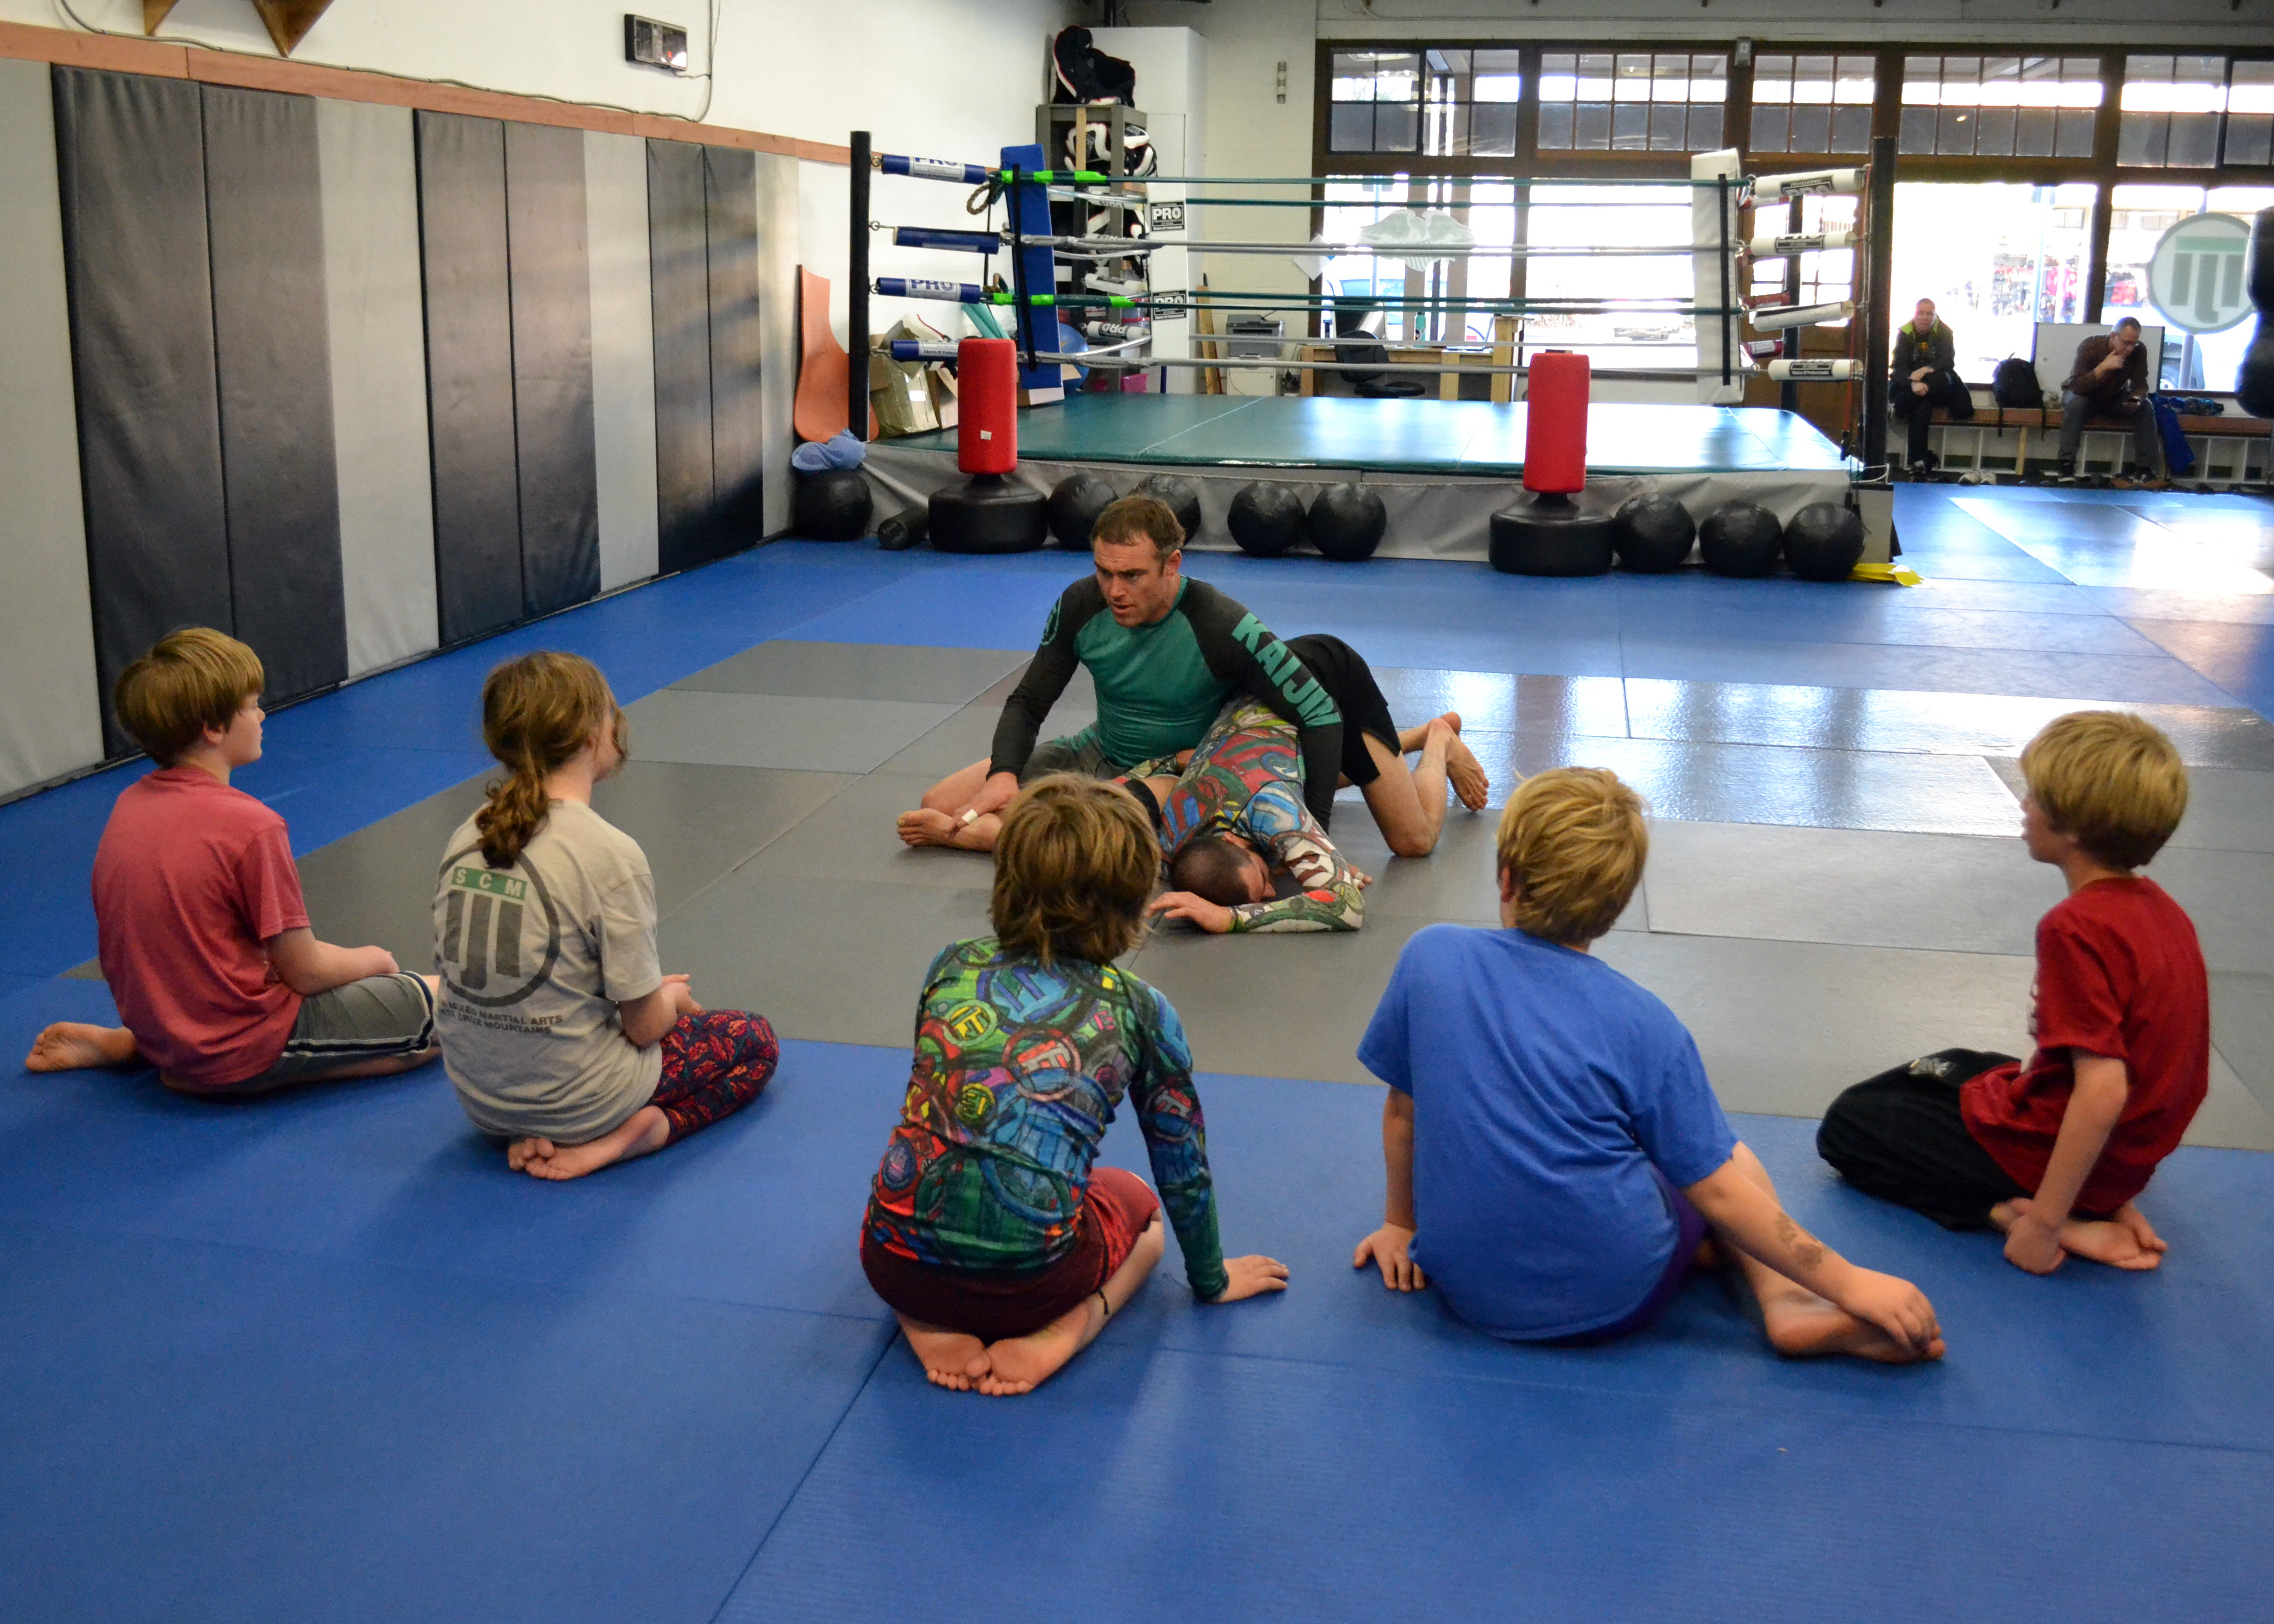 Kaijin MMA Kids No Gi Jiu-Jitsu Class In Santa Cruz